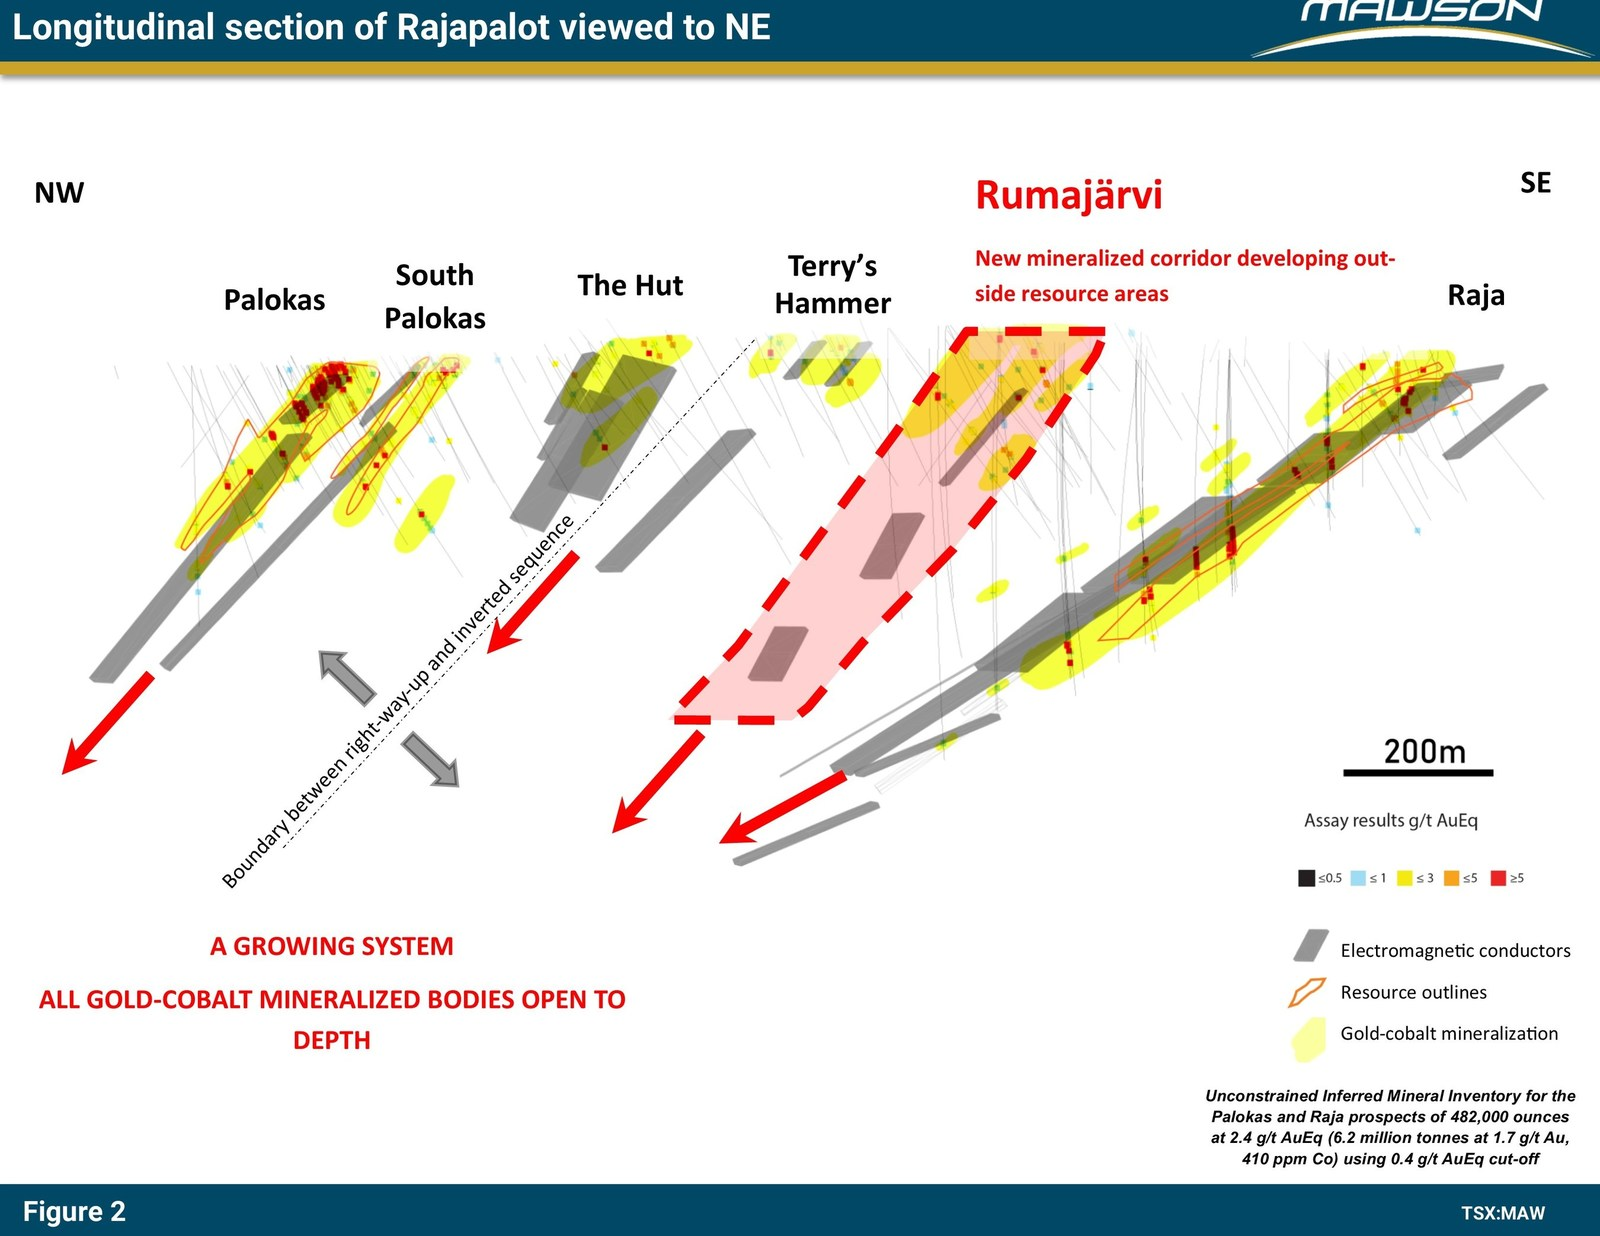 Figure 2: Combined longitudinal section at Rajapalot prospect showing expansion of system into new areas at Rumajärvi and continuation of mineralization below existing resource. Outlines of existing resource are indicated.